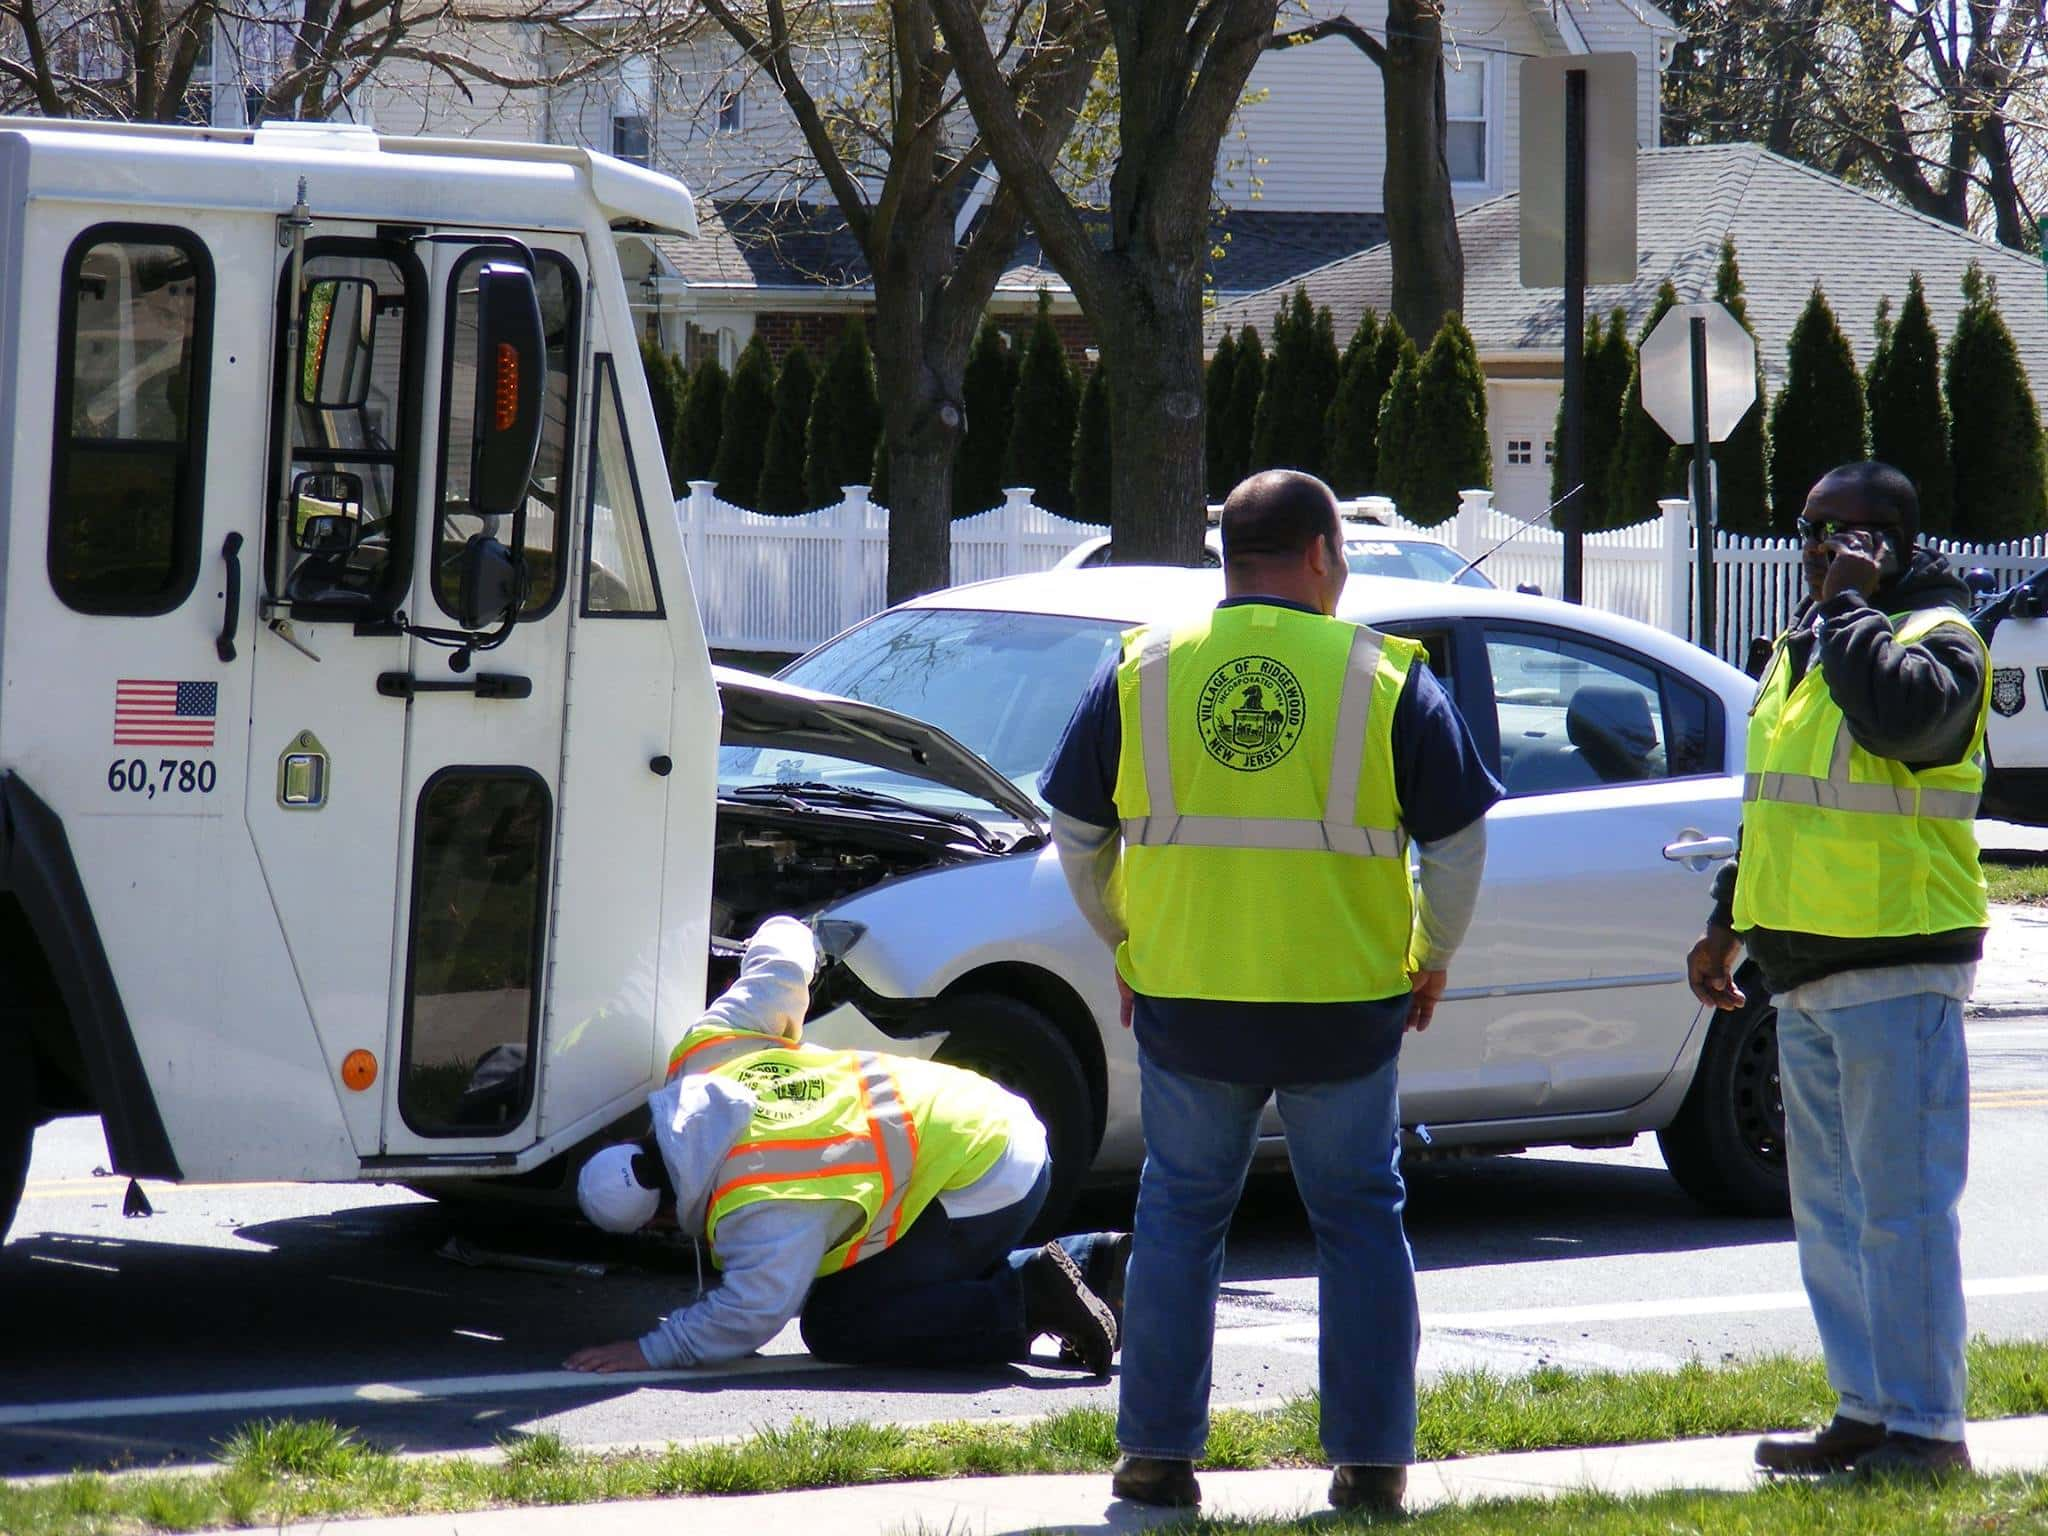 Village of Ridgewood Sanitation truck struck